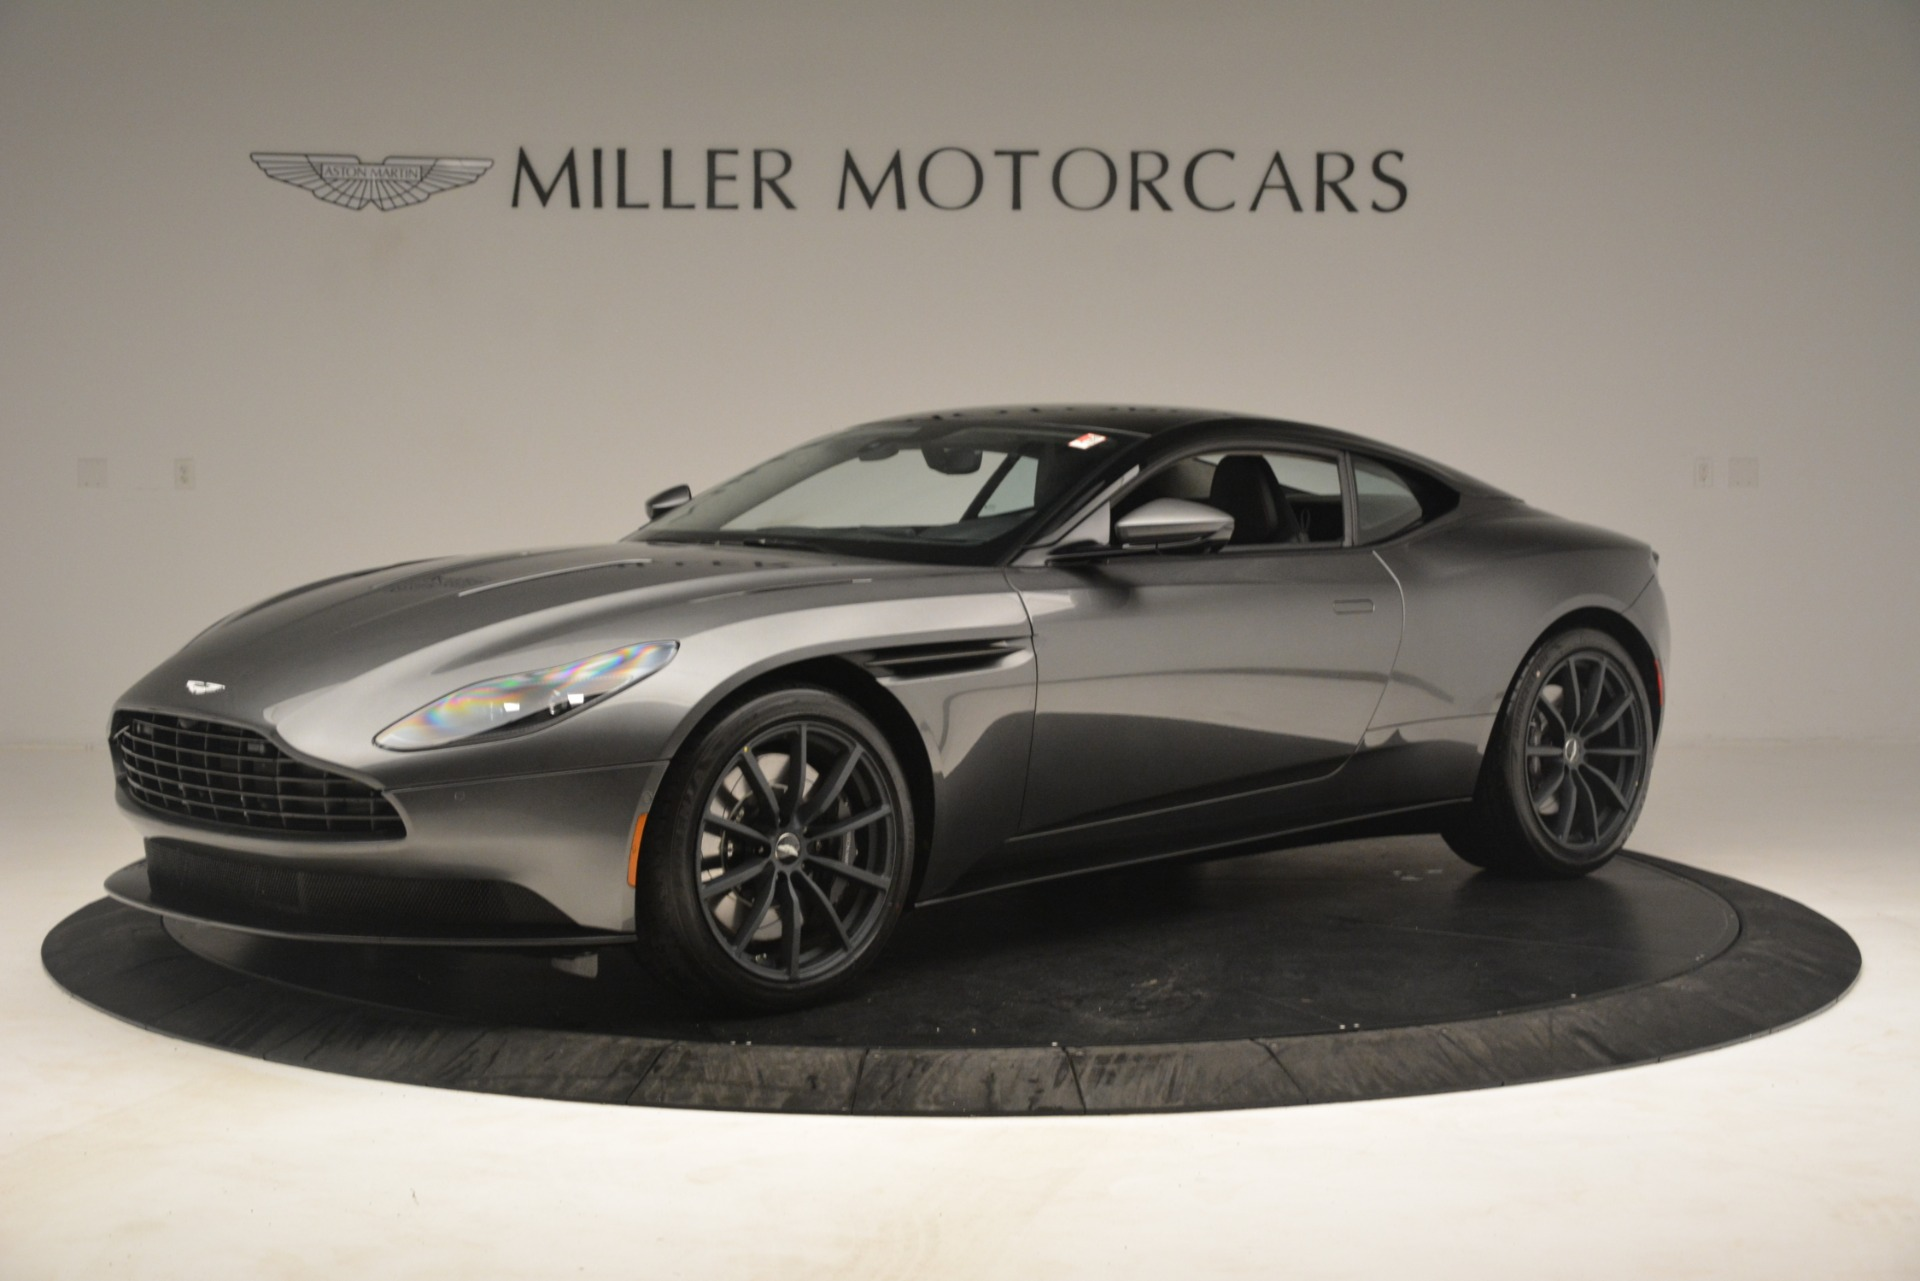 New 2019 Aston Martin DB11 V12 AMR Coupe for sale Sold at Bentley Greenwich in Greenwich CT 06830 1